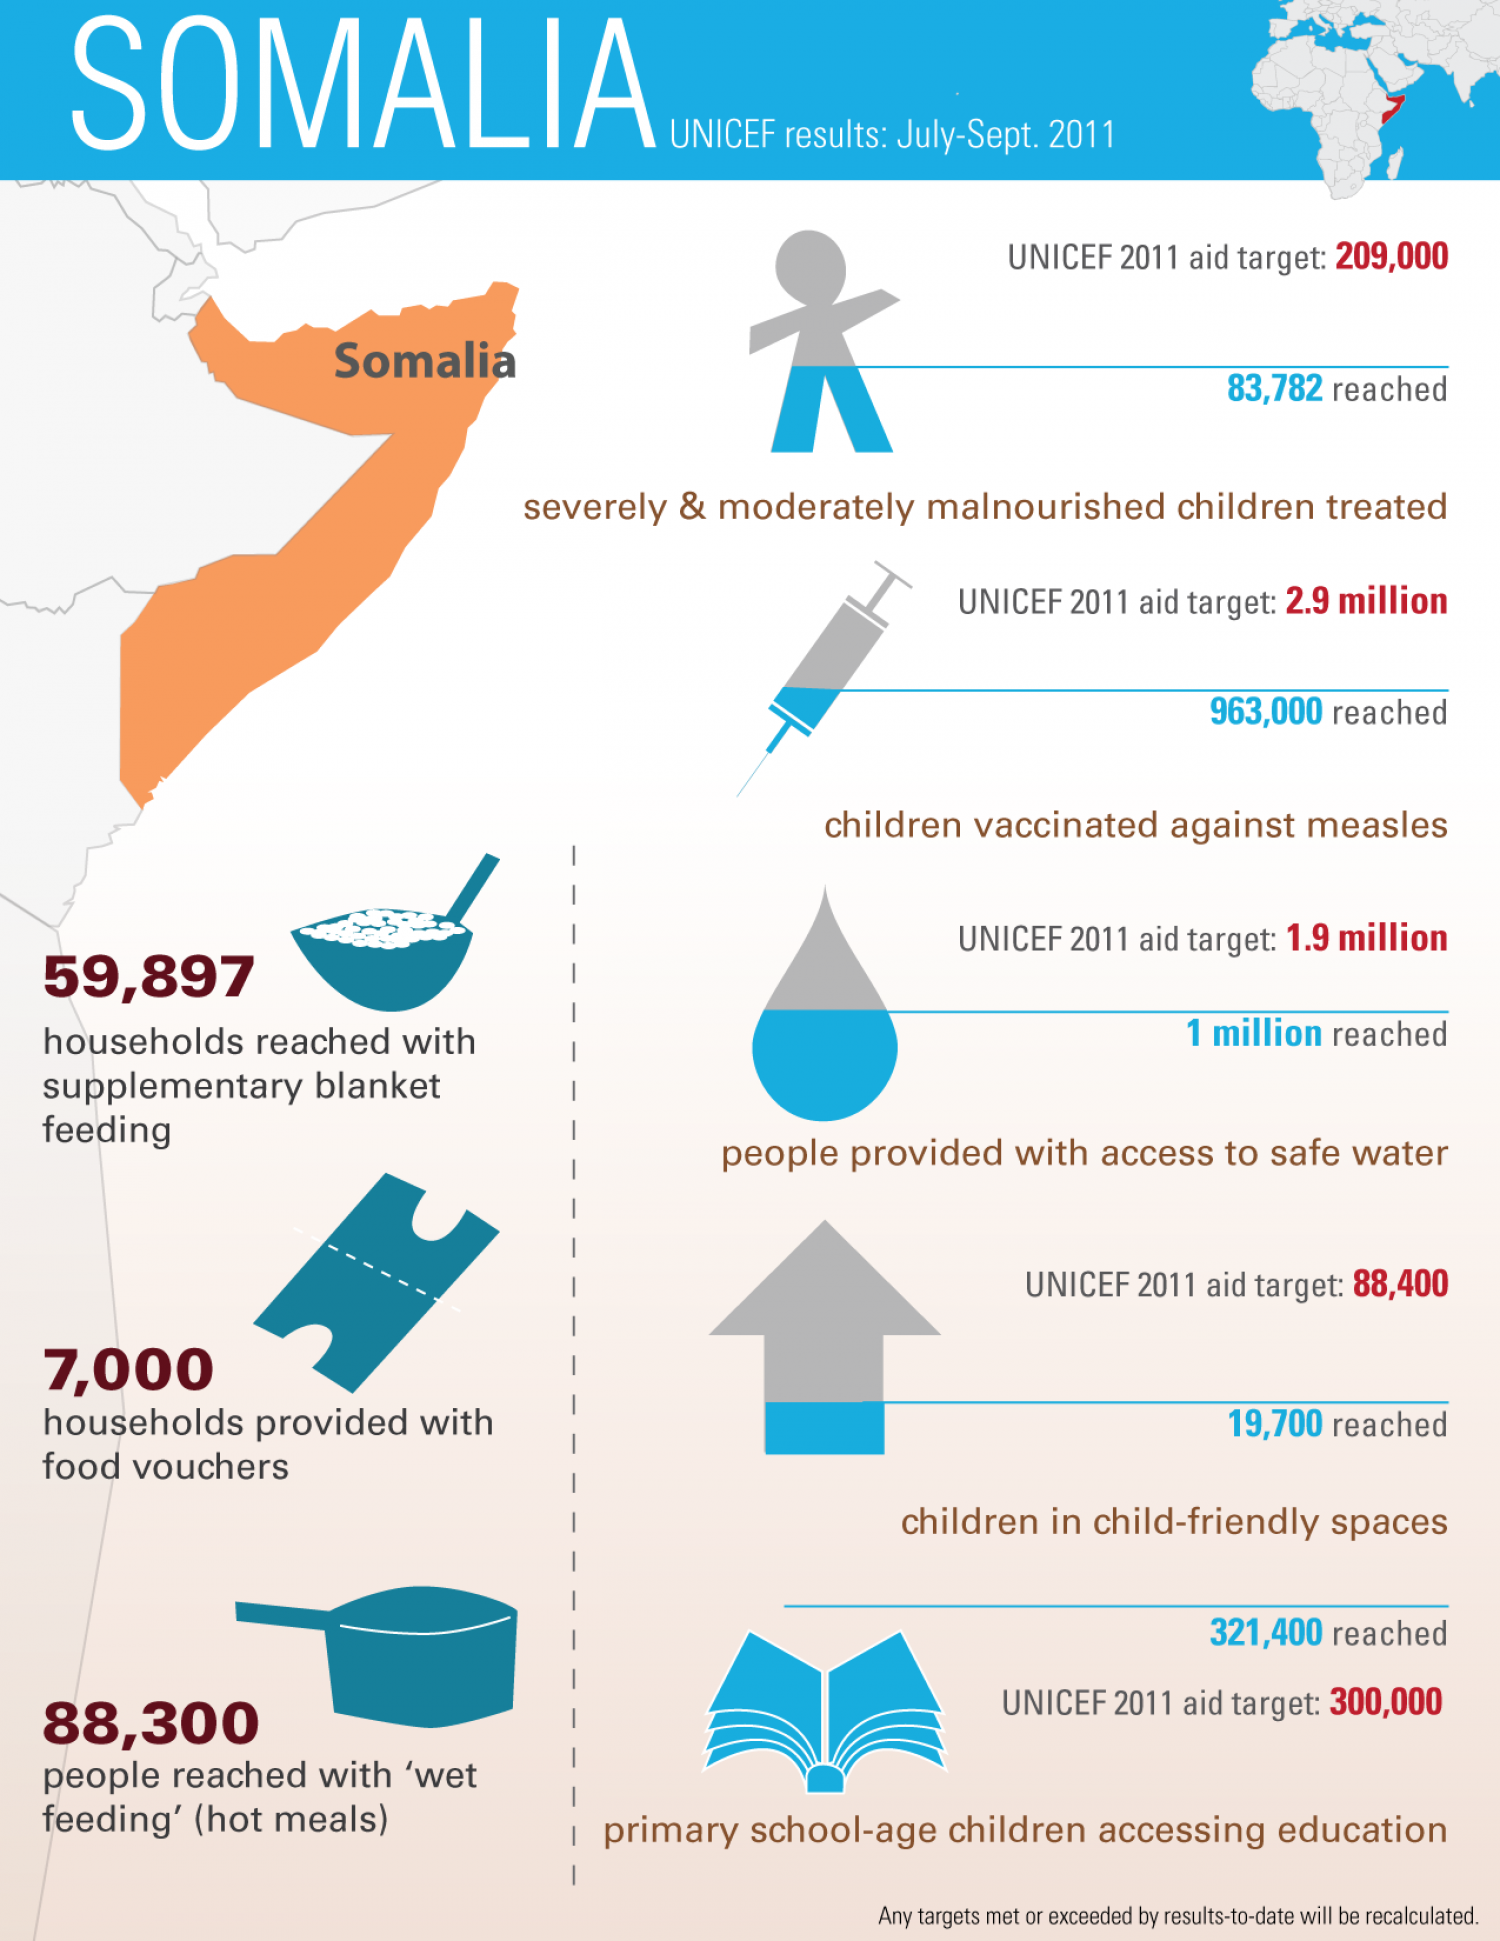 Somalia - UNICEF results July-Sept 2011 Infographic